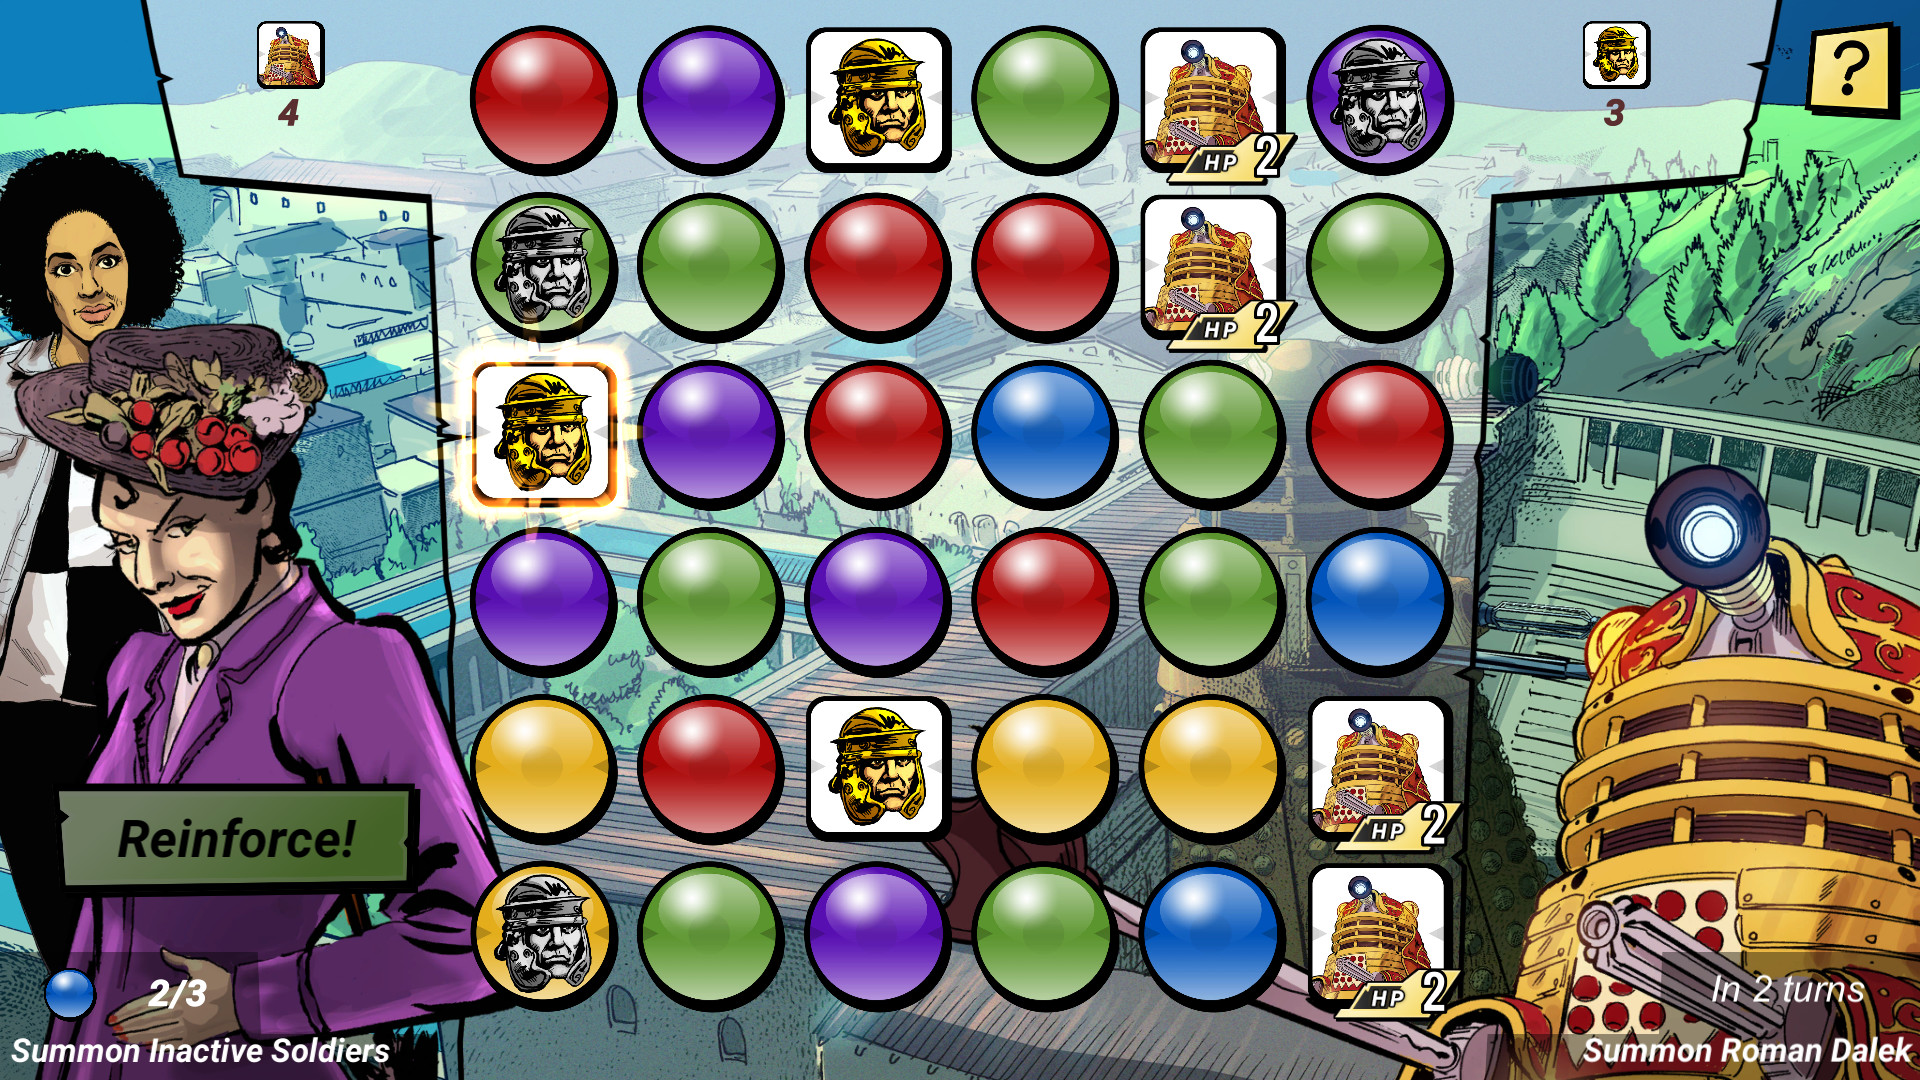 Several coloured circles and icons with characters from Doctor Who are in the centre of the screen. Missy and Bill are on the left of the screen, while a Dalek is on the right.